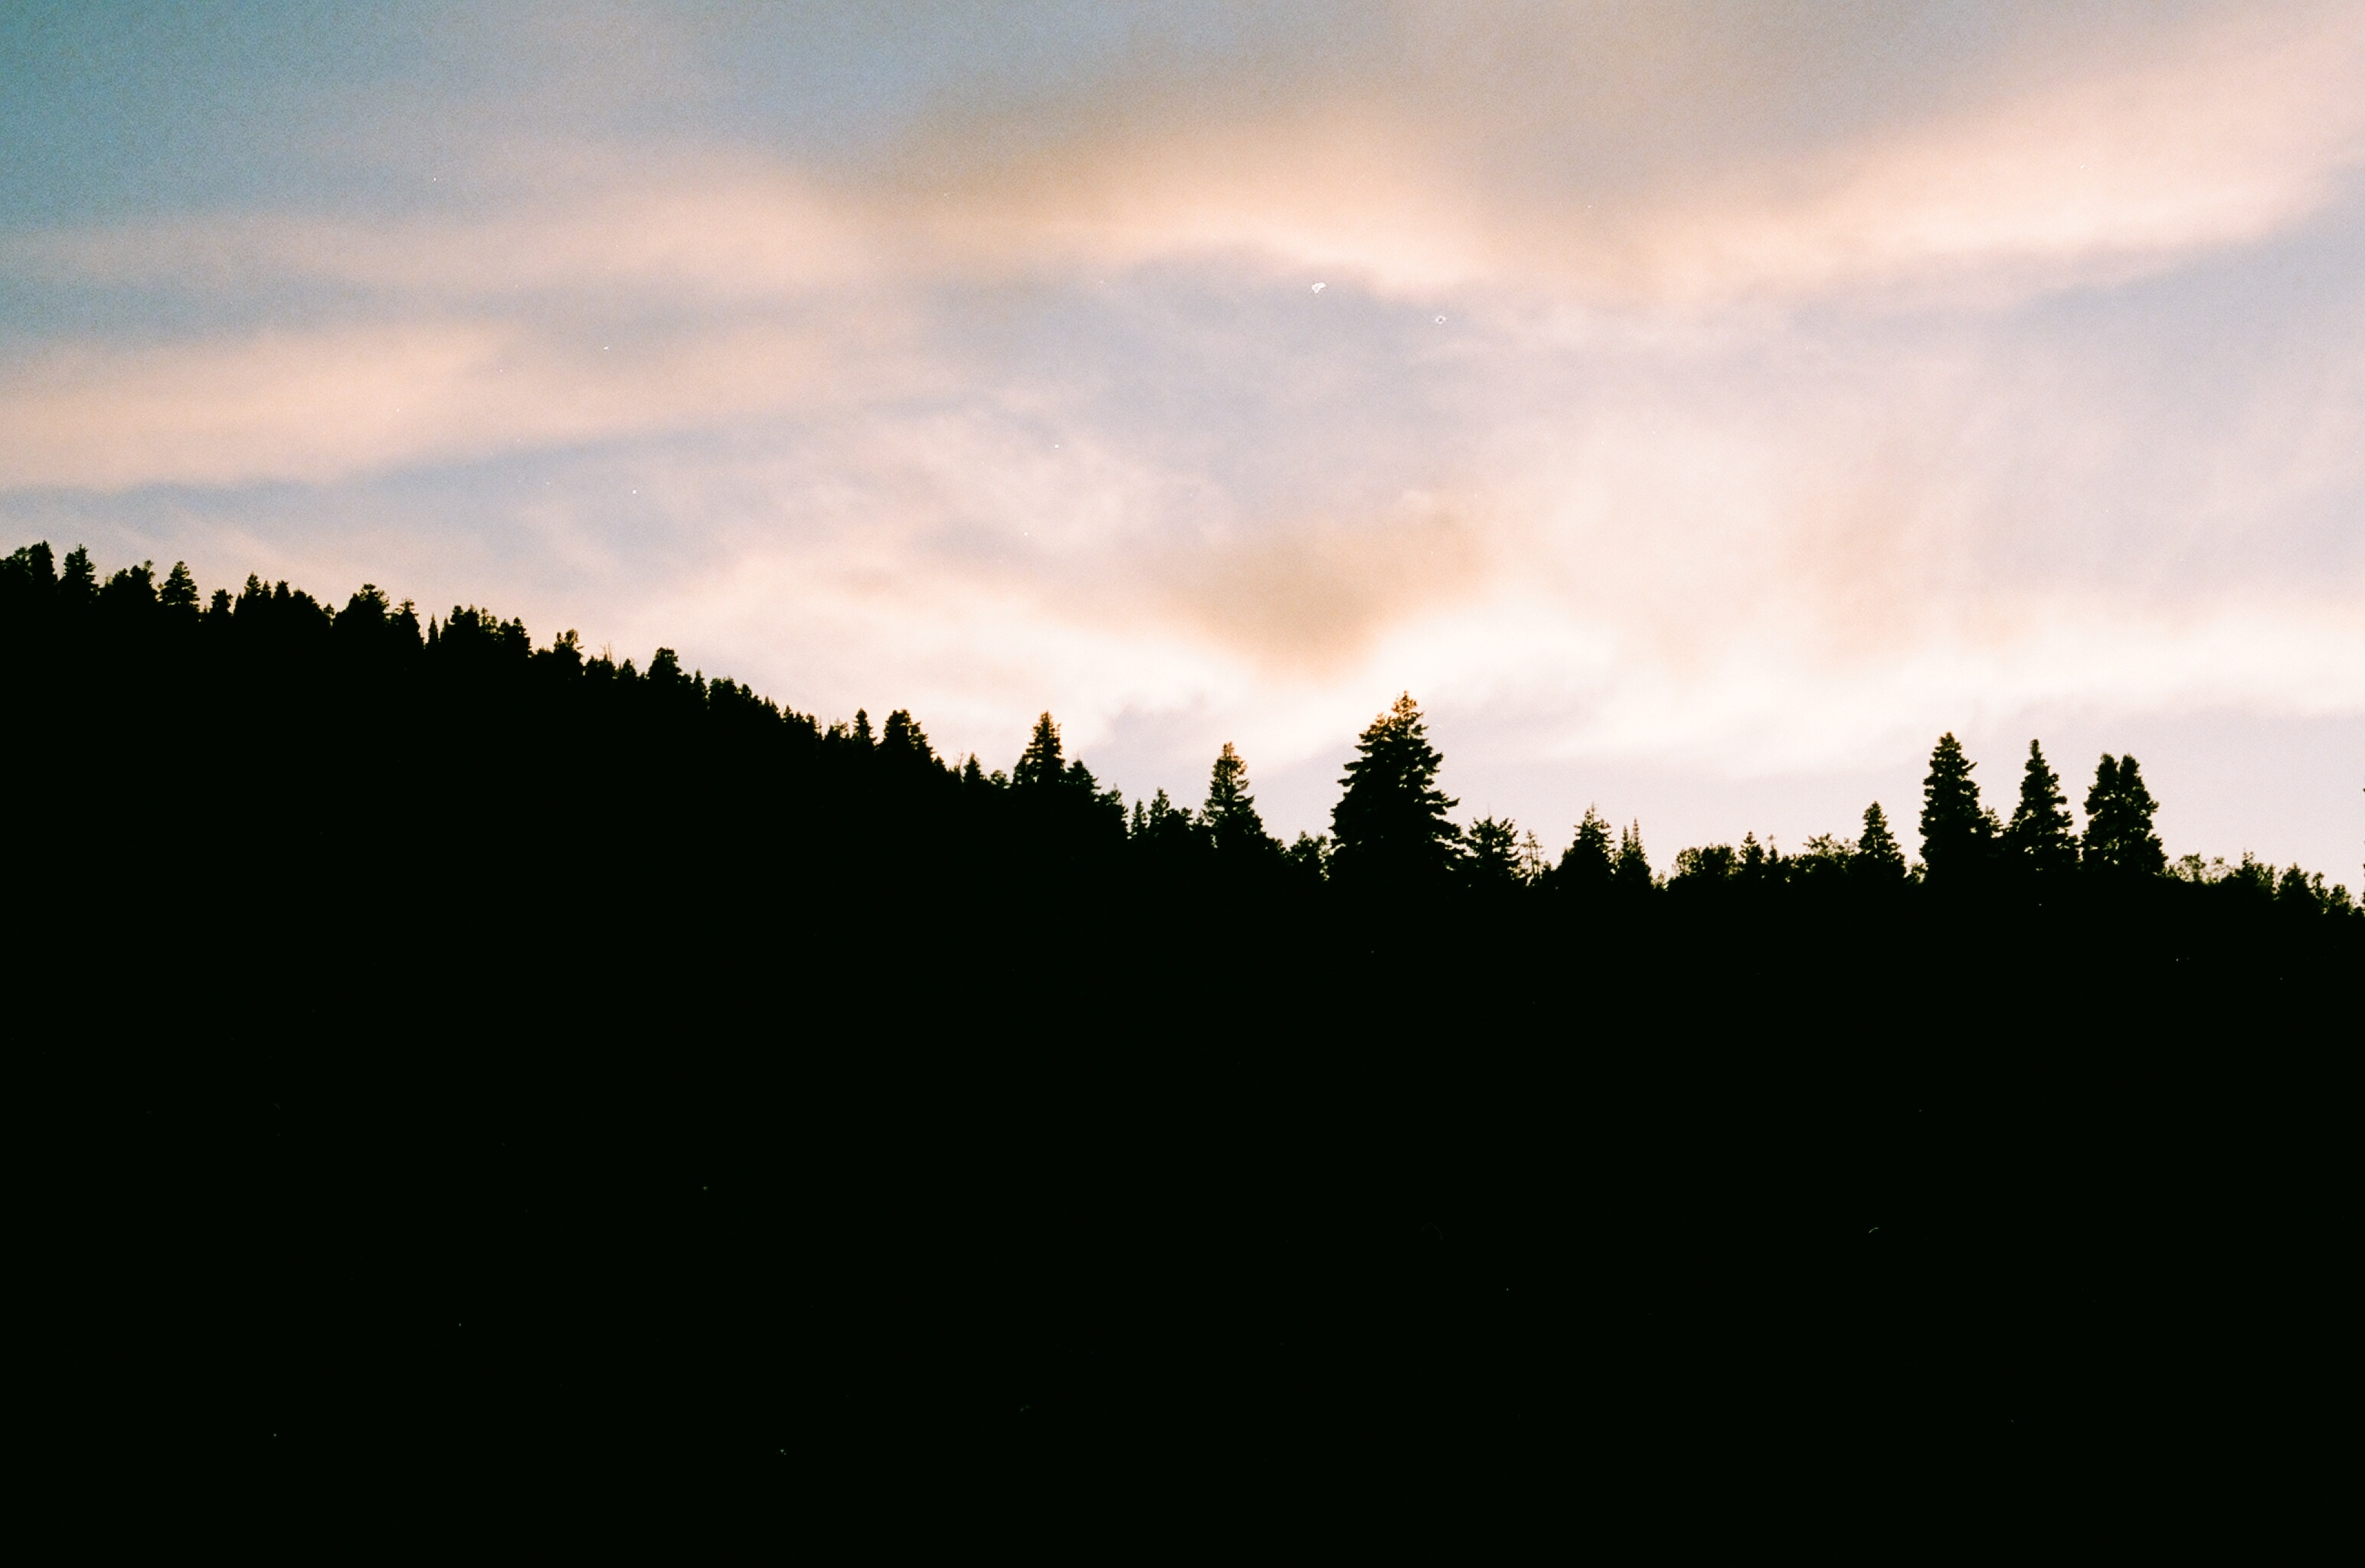 Silhouette of pine trees at sunset, sunset, pine, forest, sky, silhouette, nature